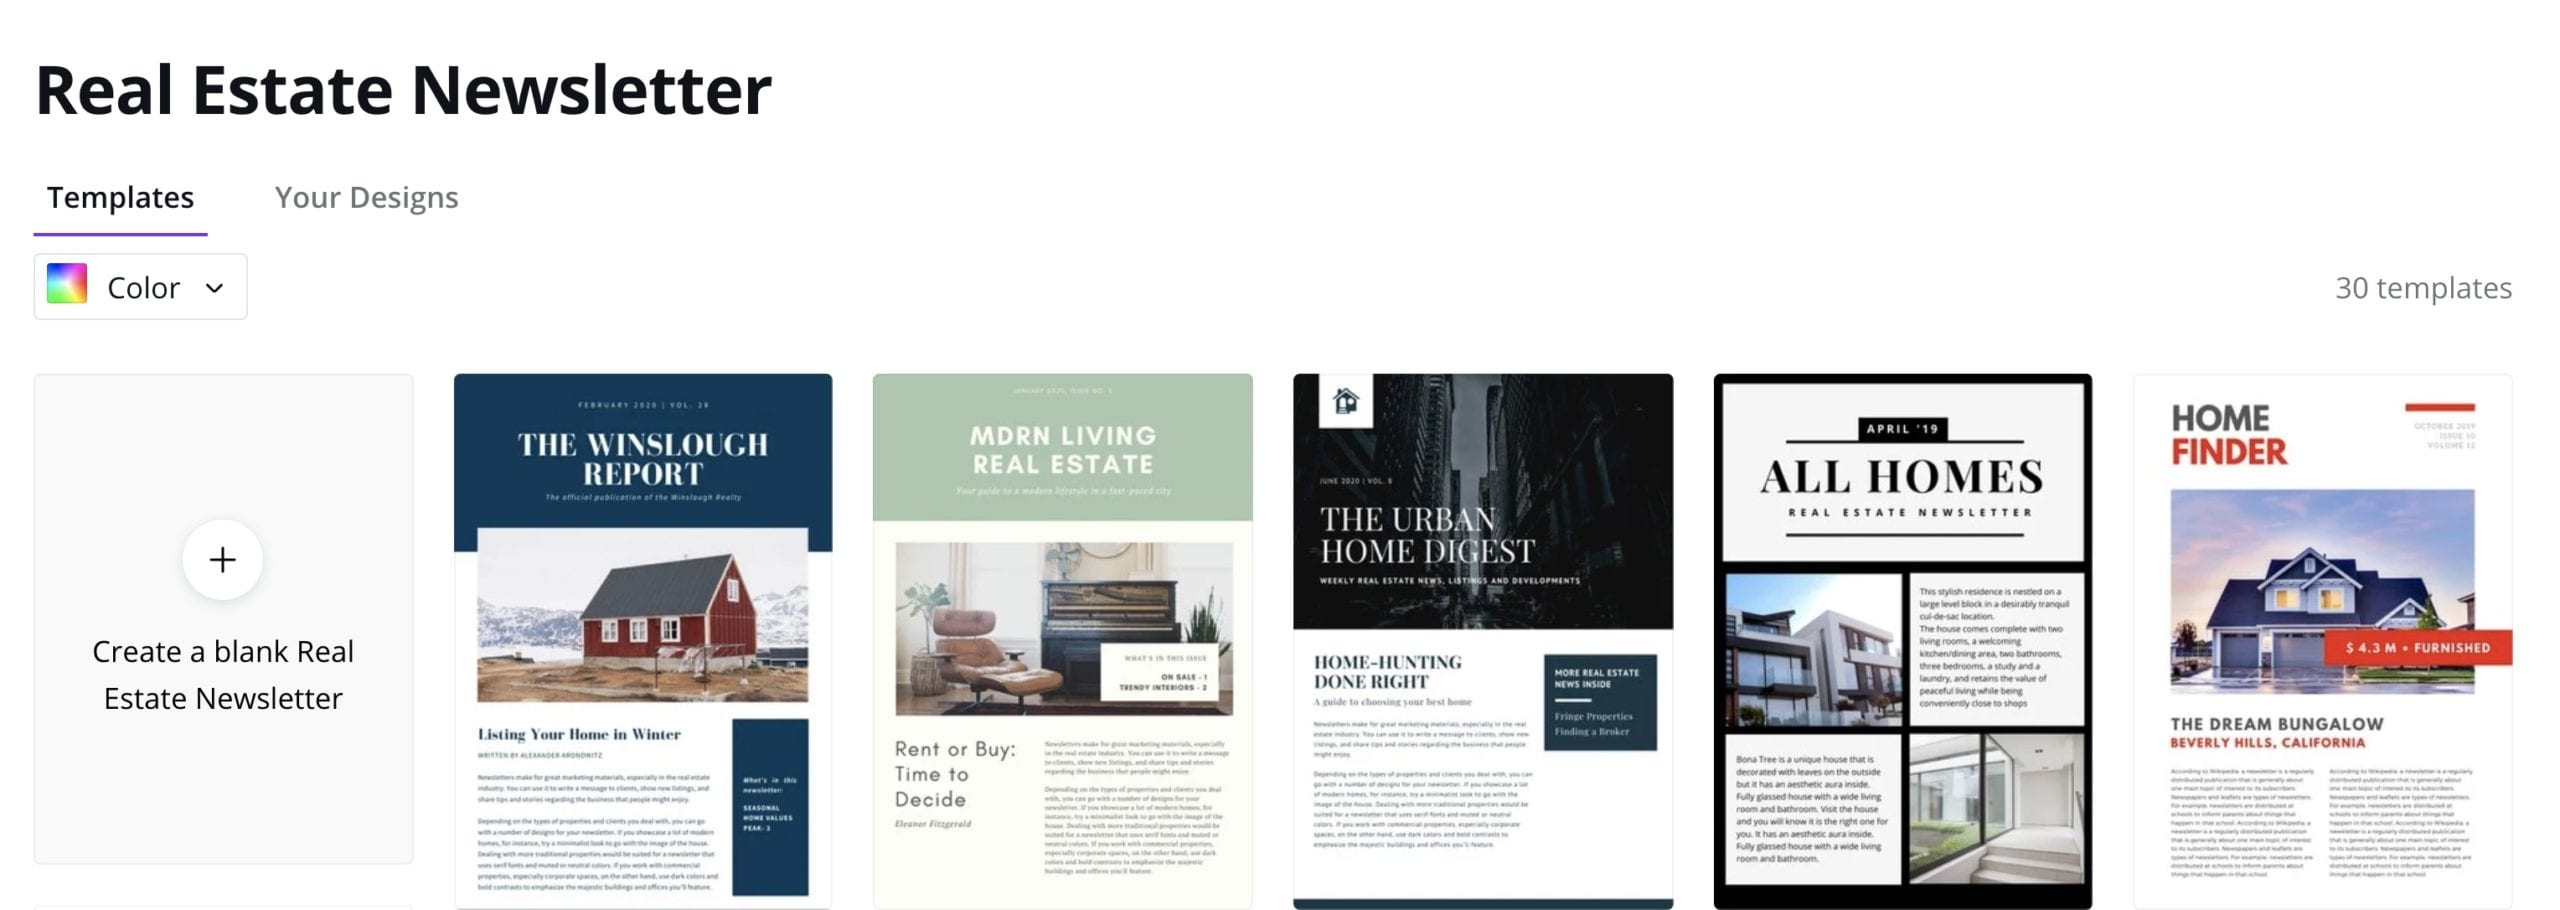 Make real estate newsletters in Canva.